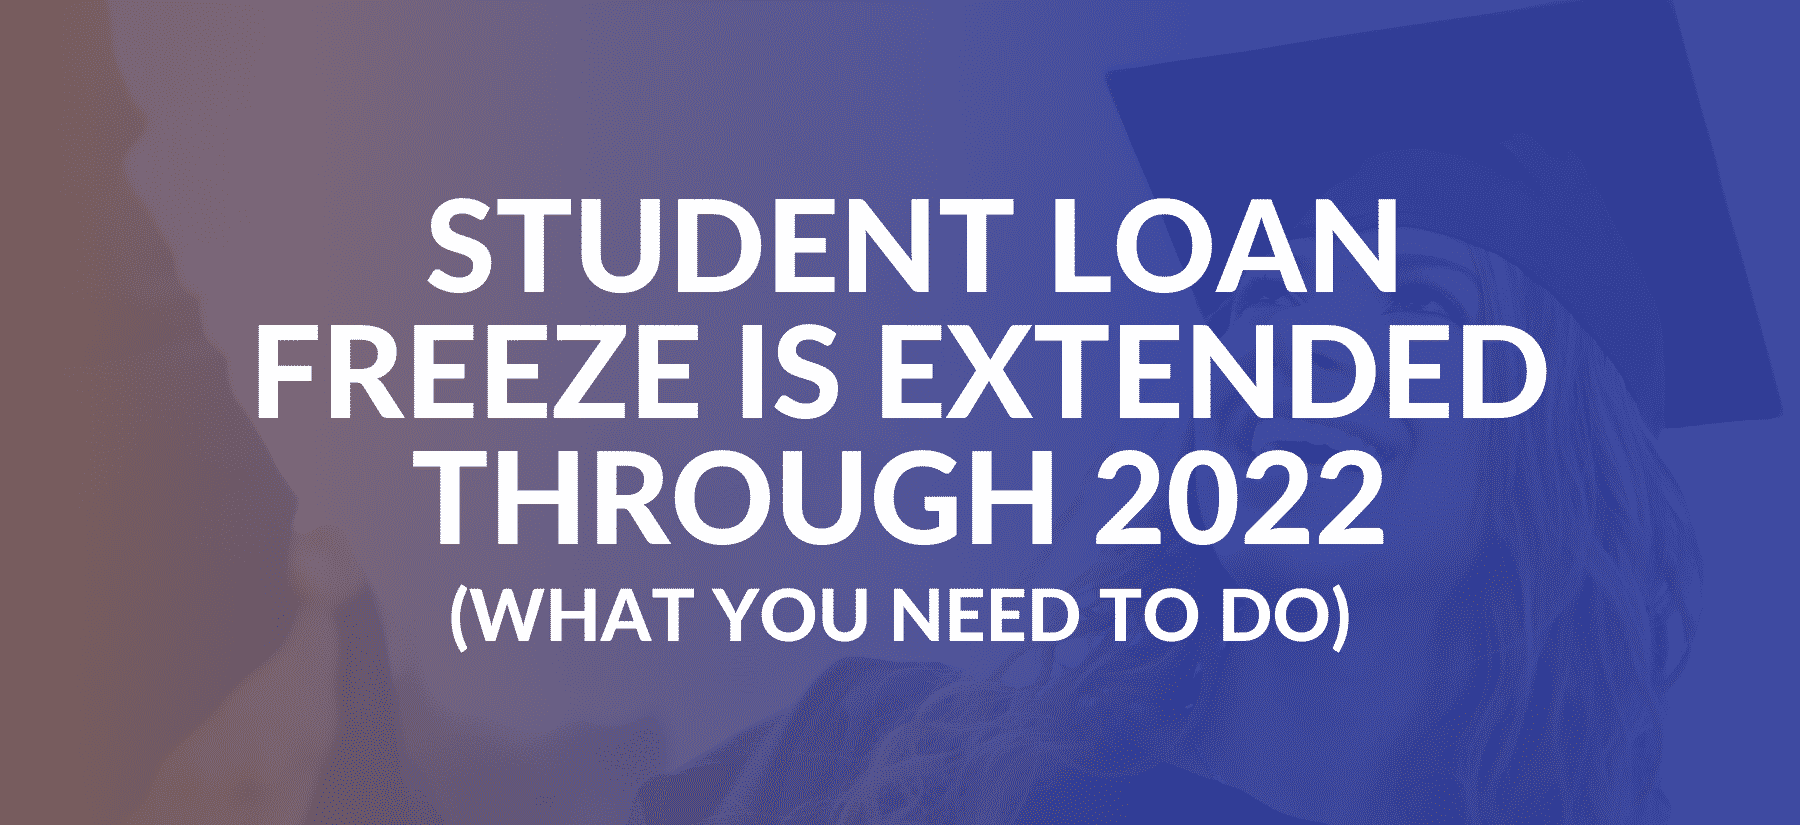 student loan freeze extended